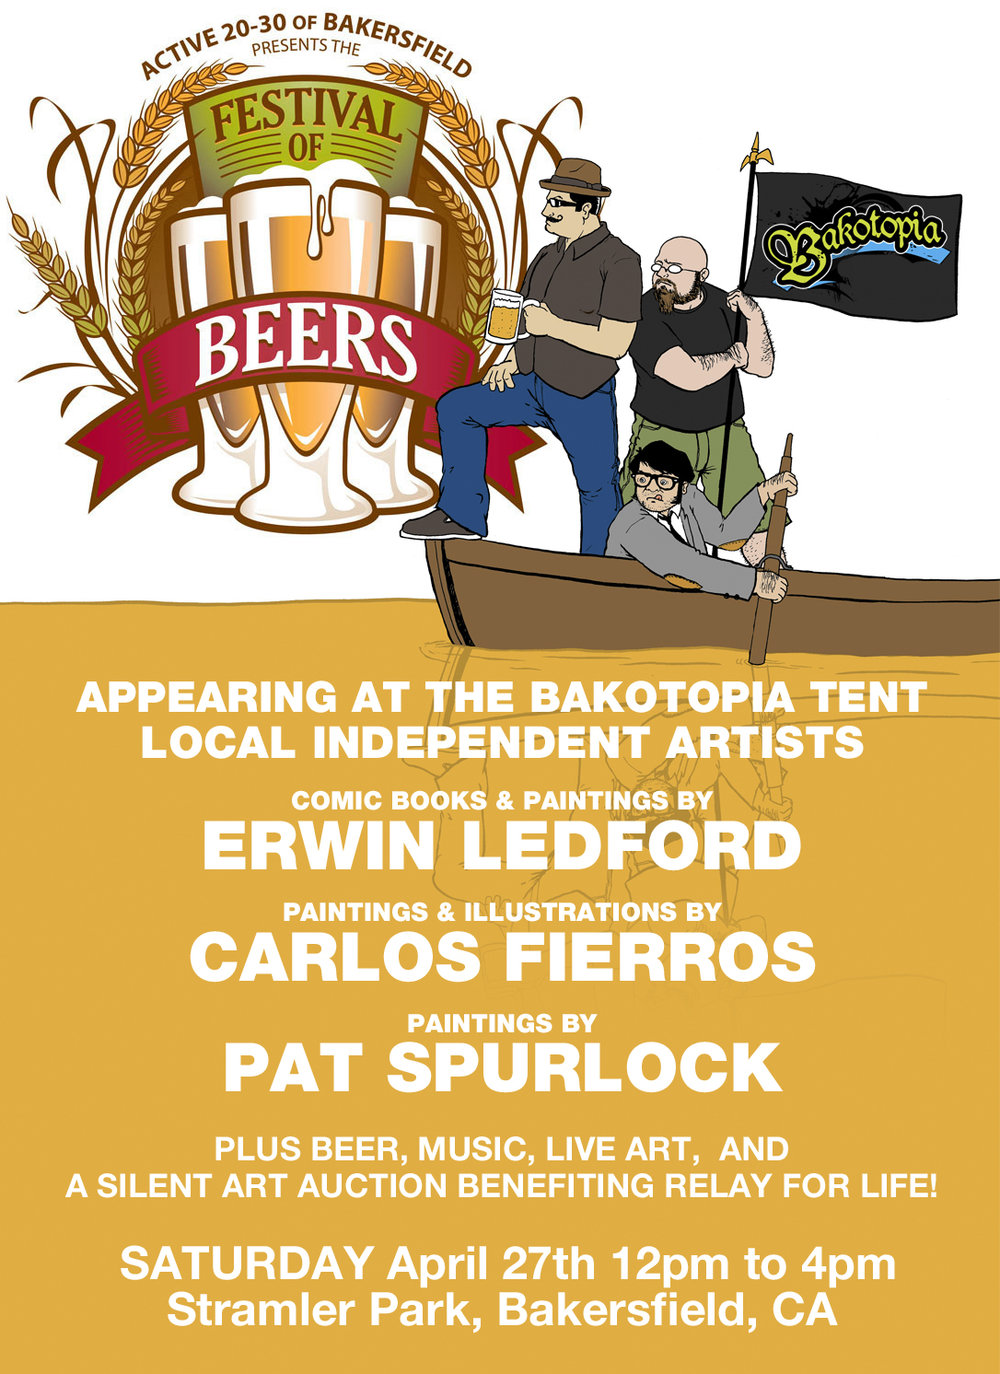 Promotional artwork for the Bakotopia Artist tent at the 2014 Festival of Beers in Bakersfield, CA.